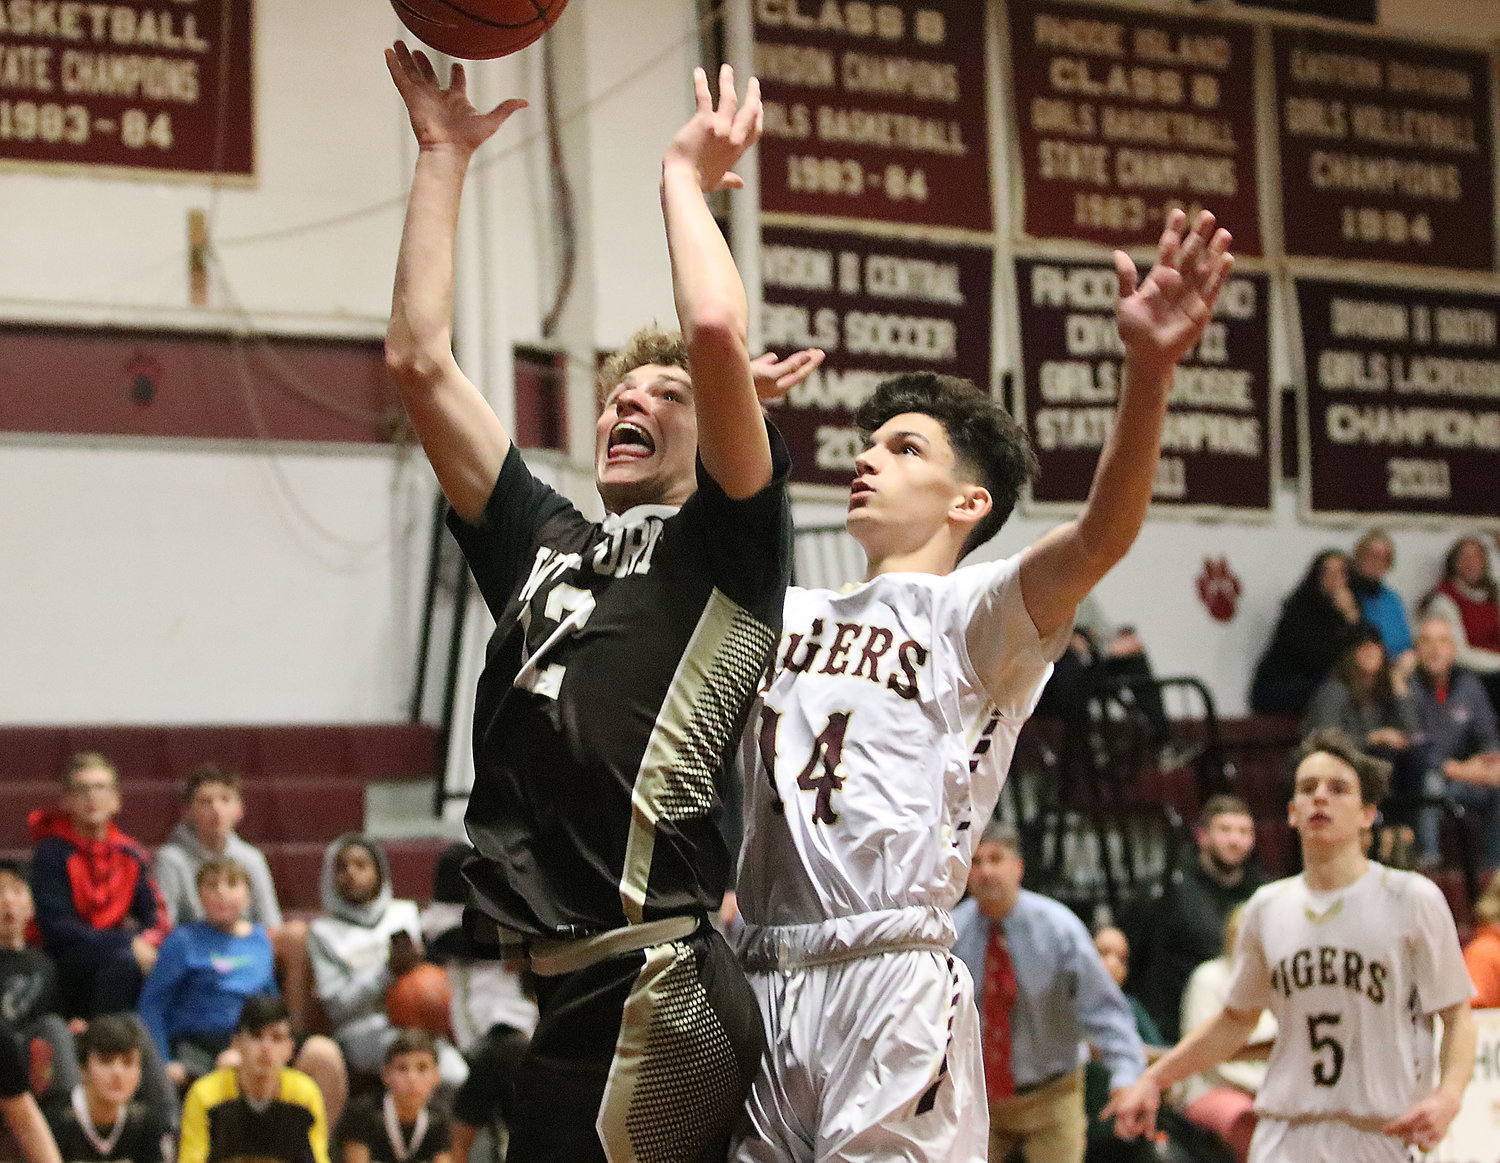 Westport guard Max Mendell goes up for a shot for the win with seconds in the game, covered defensively by Tiverton's Mason Viveiros. Mendell's shot slid off the rim as time ran out and Tiverton won the game 50-49.